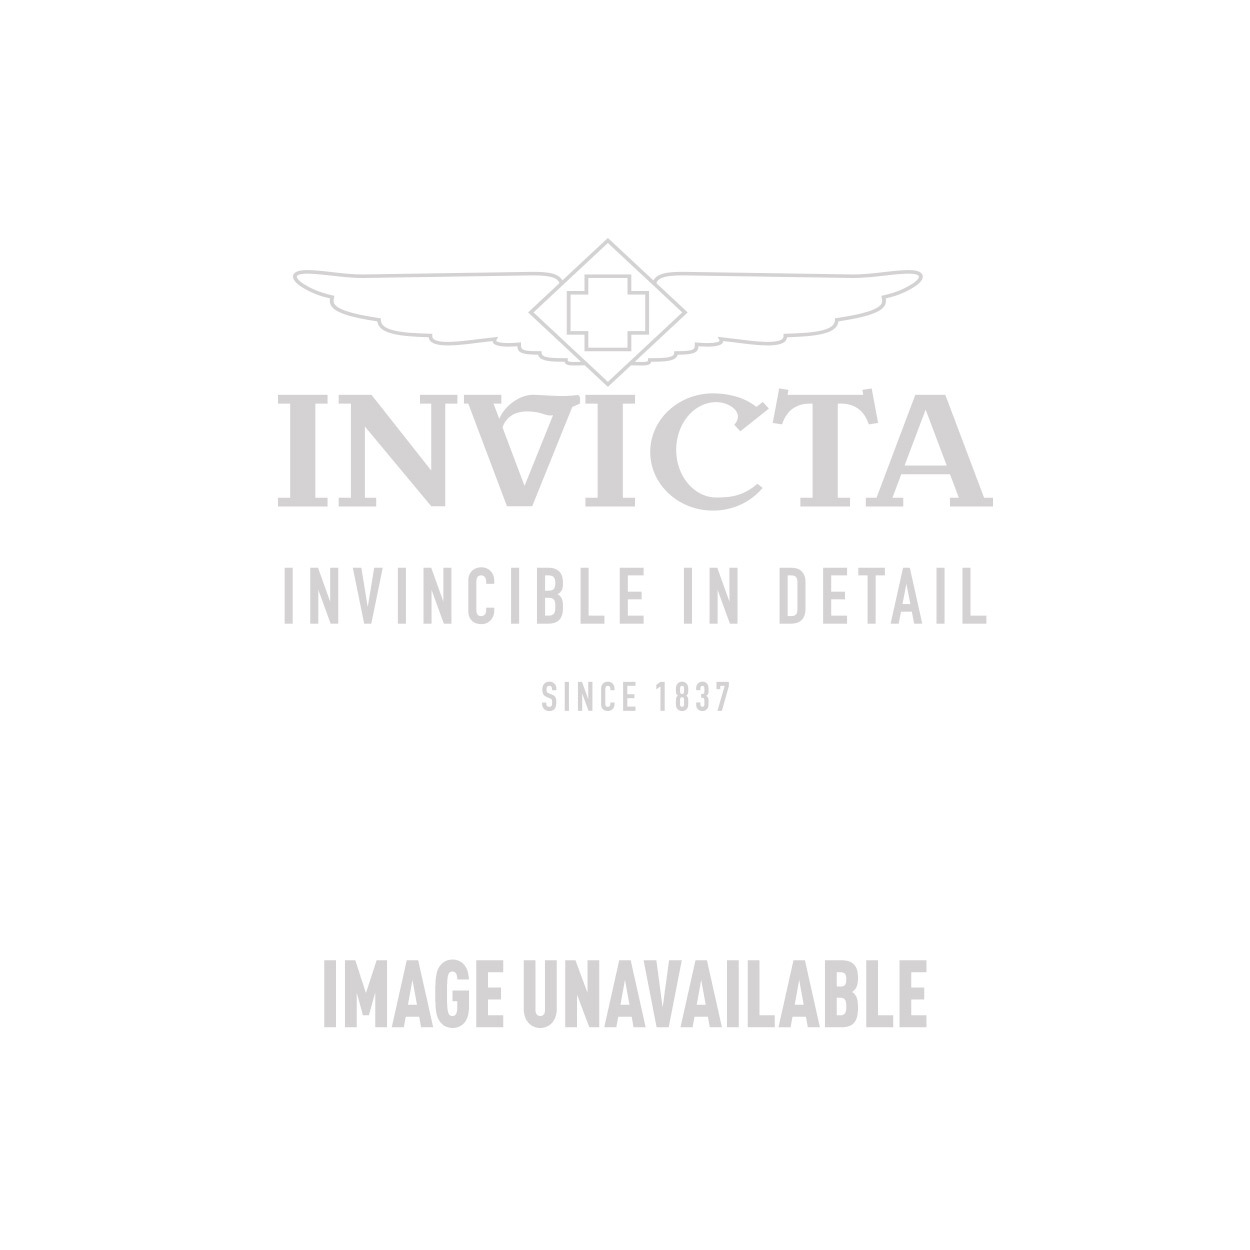 Invicta Reserve Swiss Made Quartz Watch - Stainless Steel case with Black tone Silicone and Steel band - Model 21644